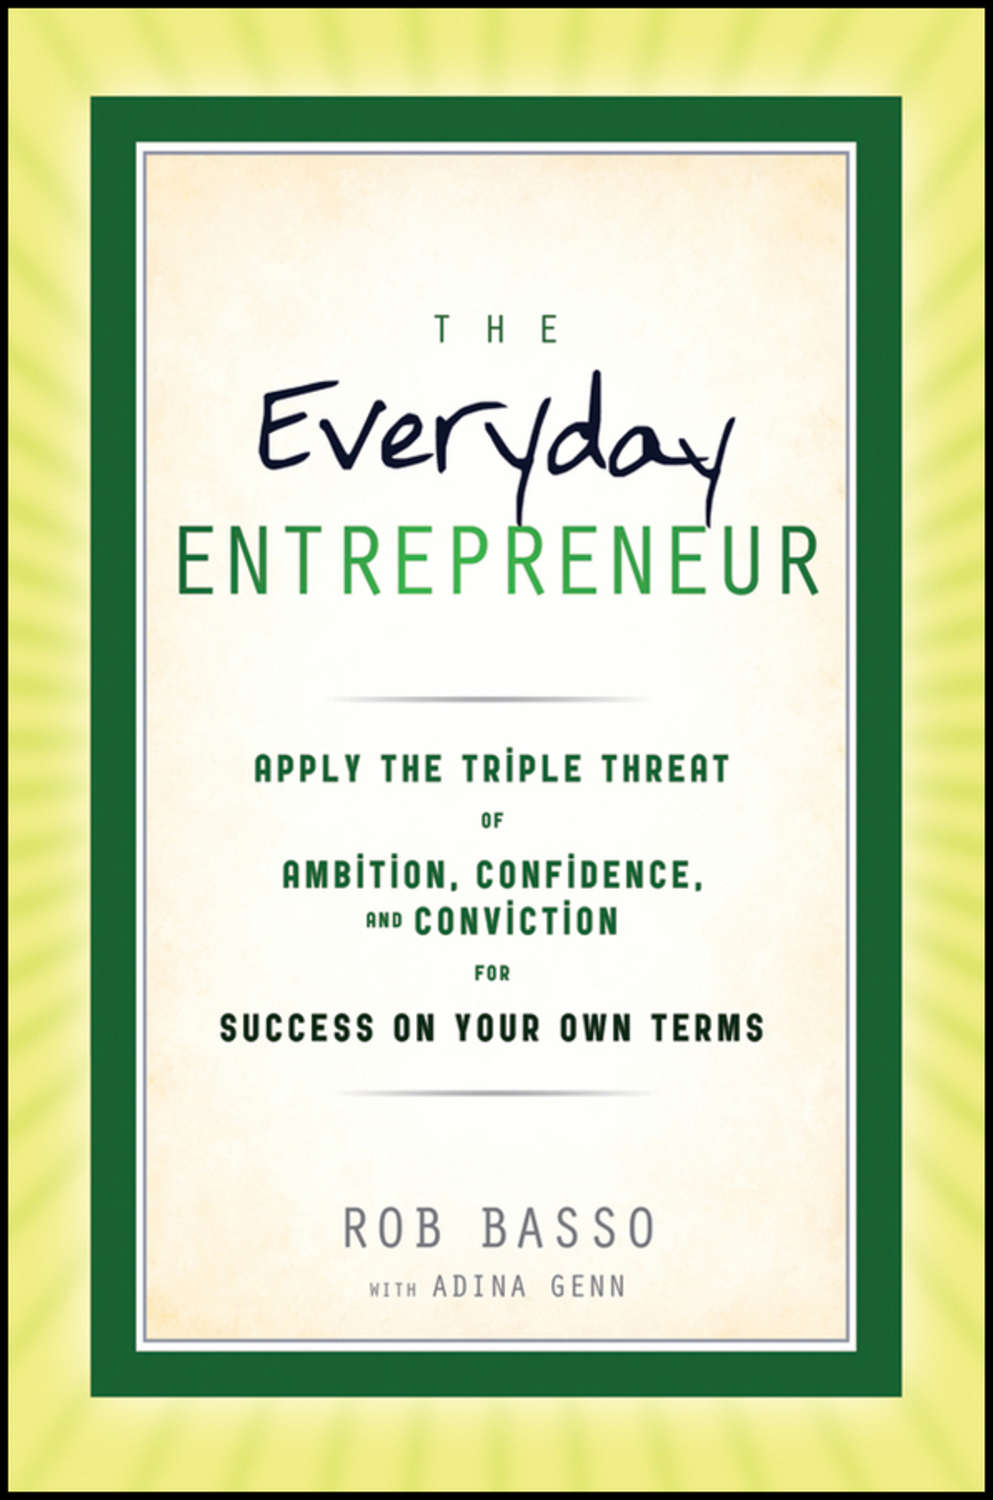 entrepreneurial ambitions essay Description of mike lazaridis mike lazaridis is a famous greek canadian entrepreneur, business executive and philanthropist he was born in istanbul, turkey on march 14th, 1961, and came to canada at the age of 5, and was raised in windsor, ontario.